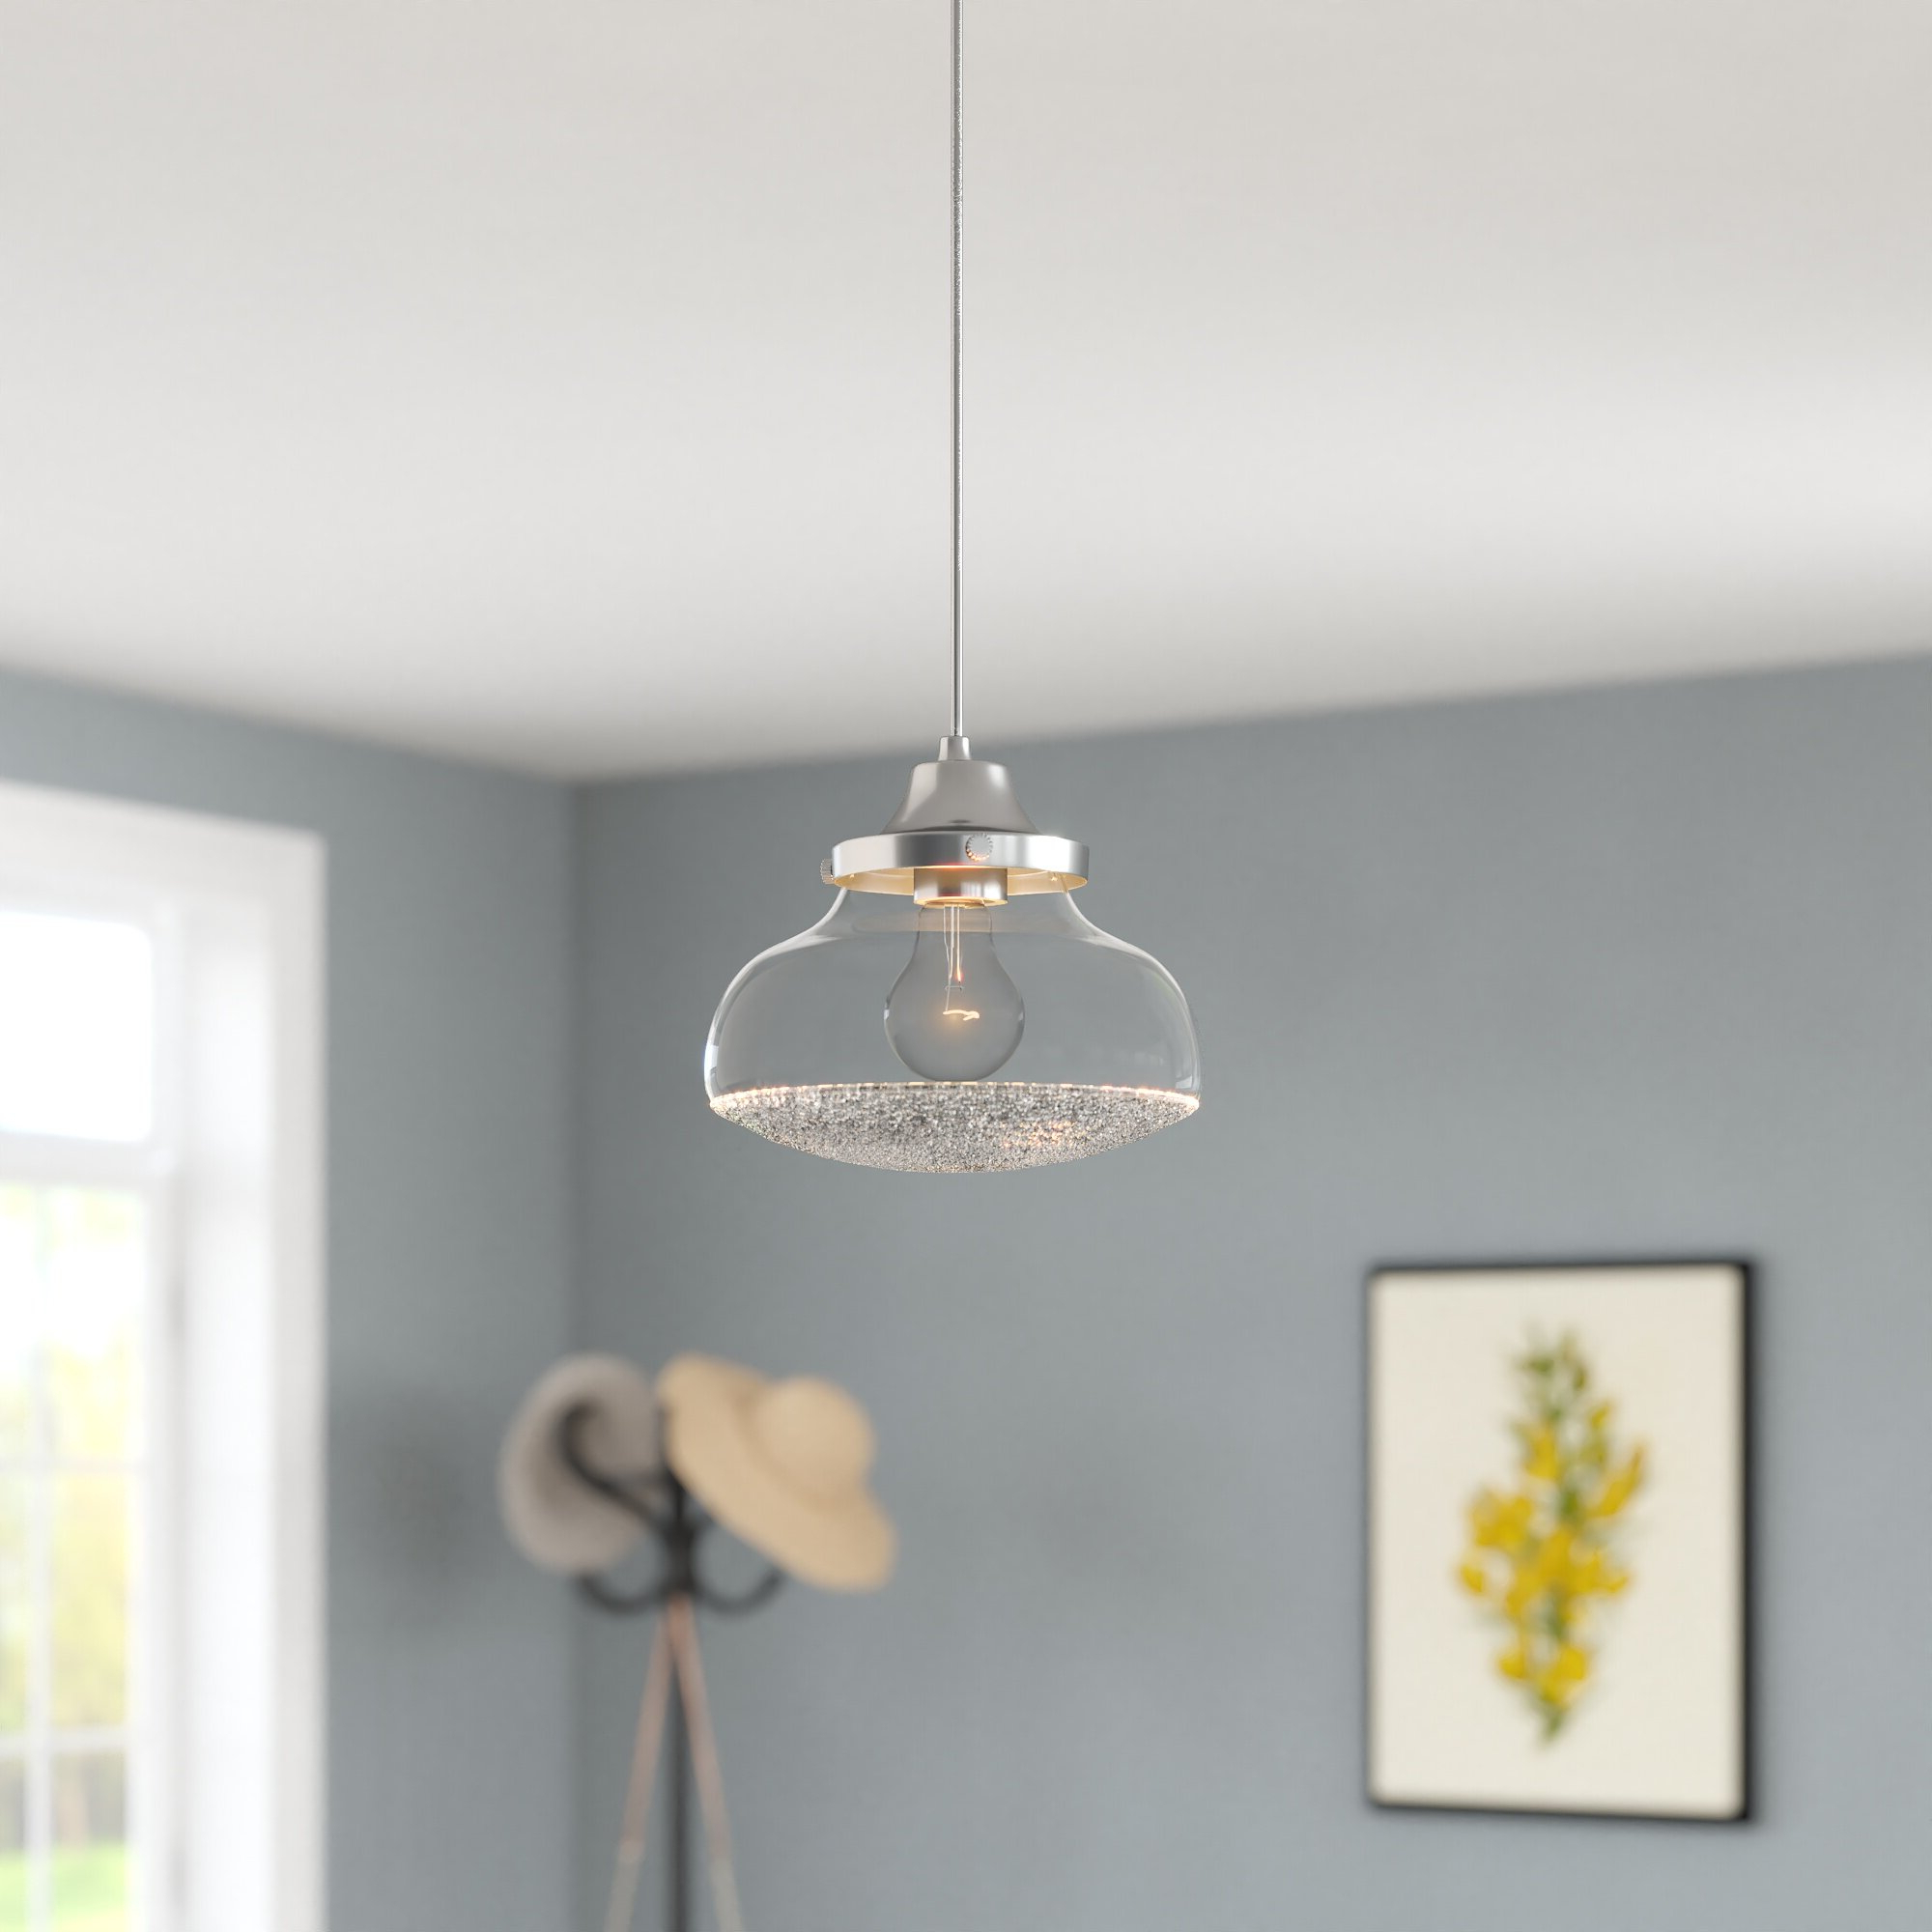 Fashionable Ivy Bronx Pendant Lighting You'll Love In  (View 13 of 25)